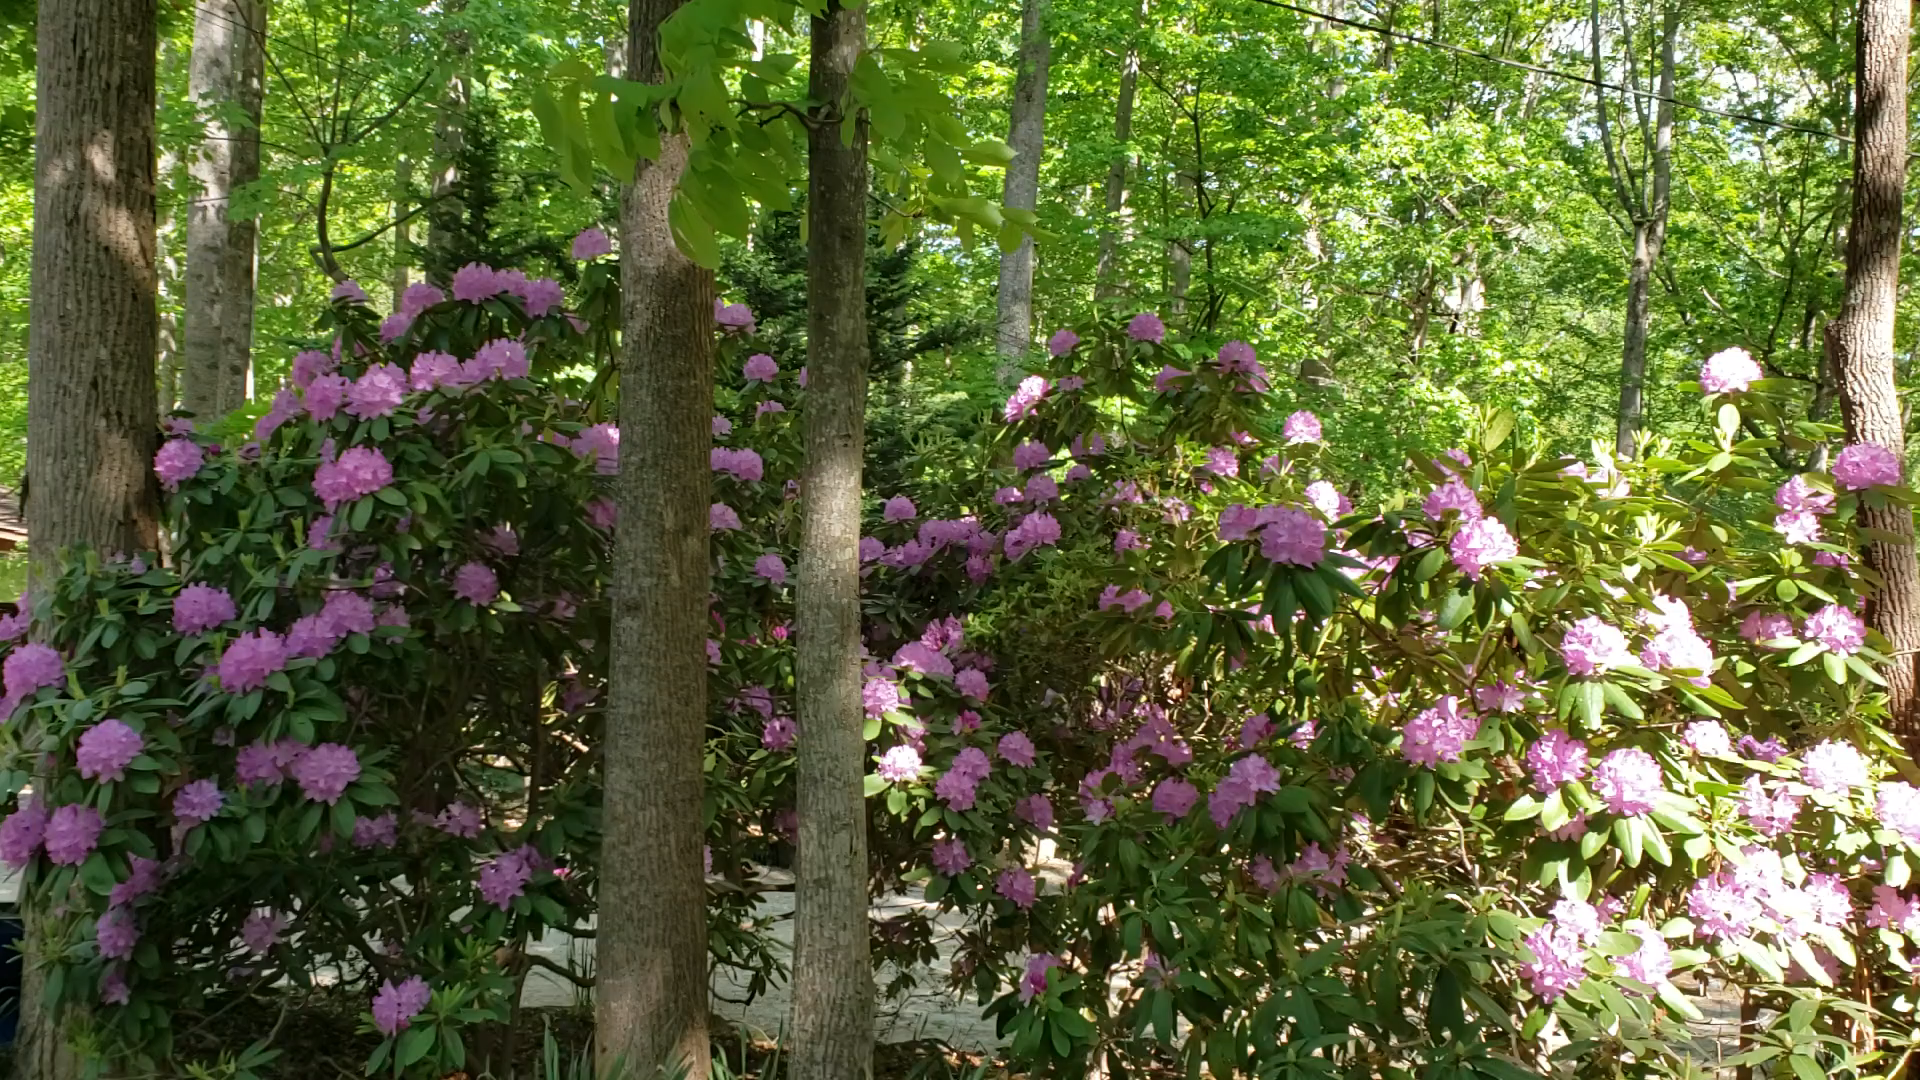 Rhododendrons in bloom at Willow Winds